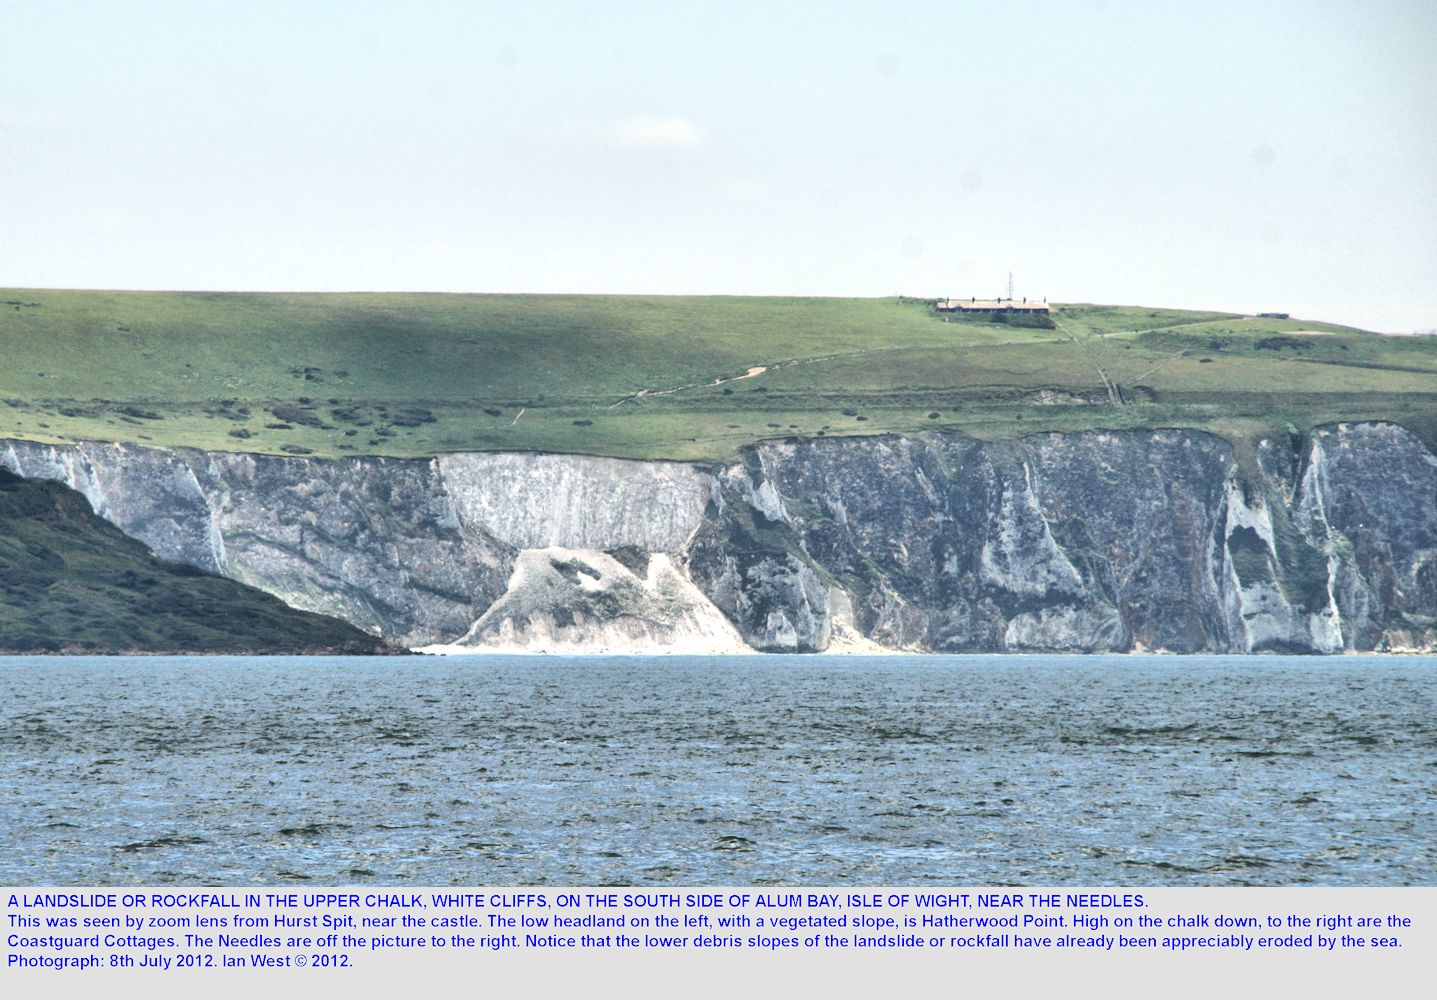 A landslide or rock-fall in the Chalk on the south side of Alum Bay, near the Needles, Isle of Wight, as seen from Hurst Spit in July 2012